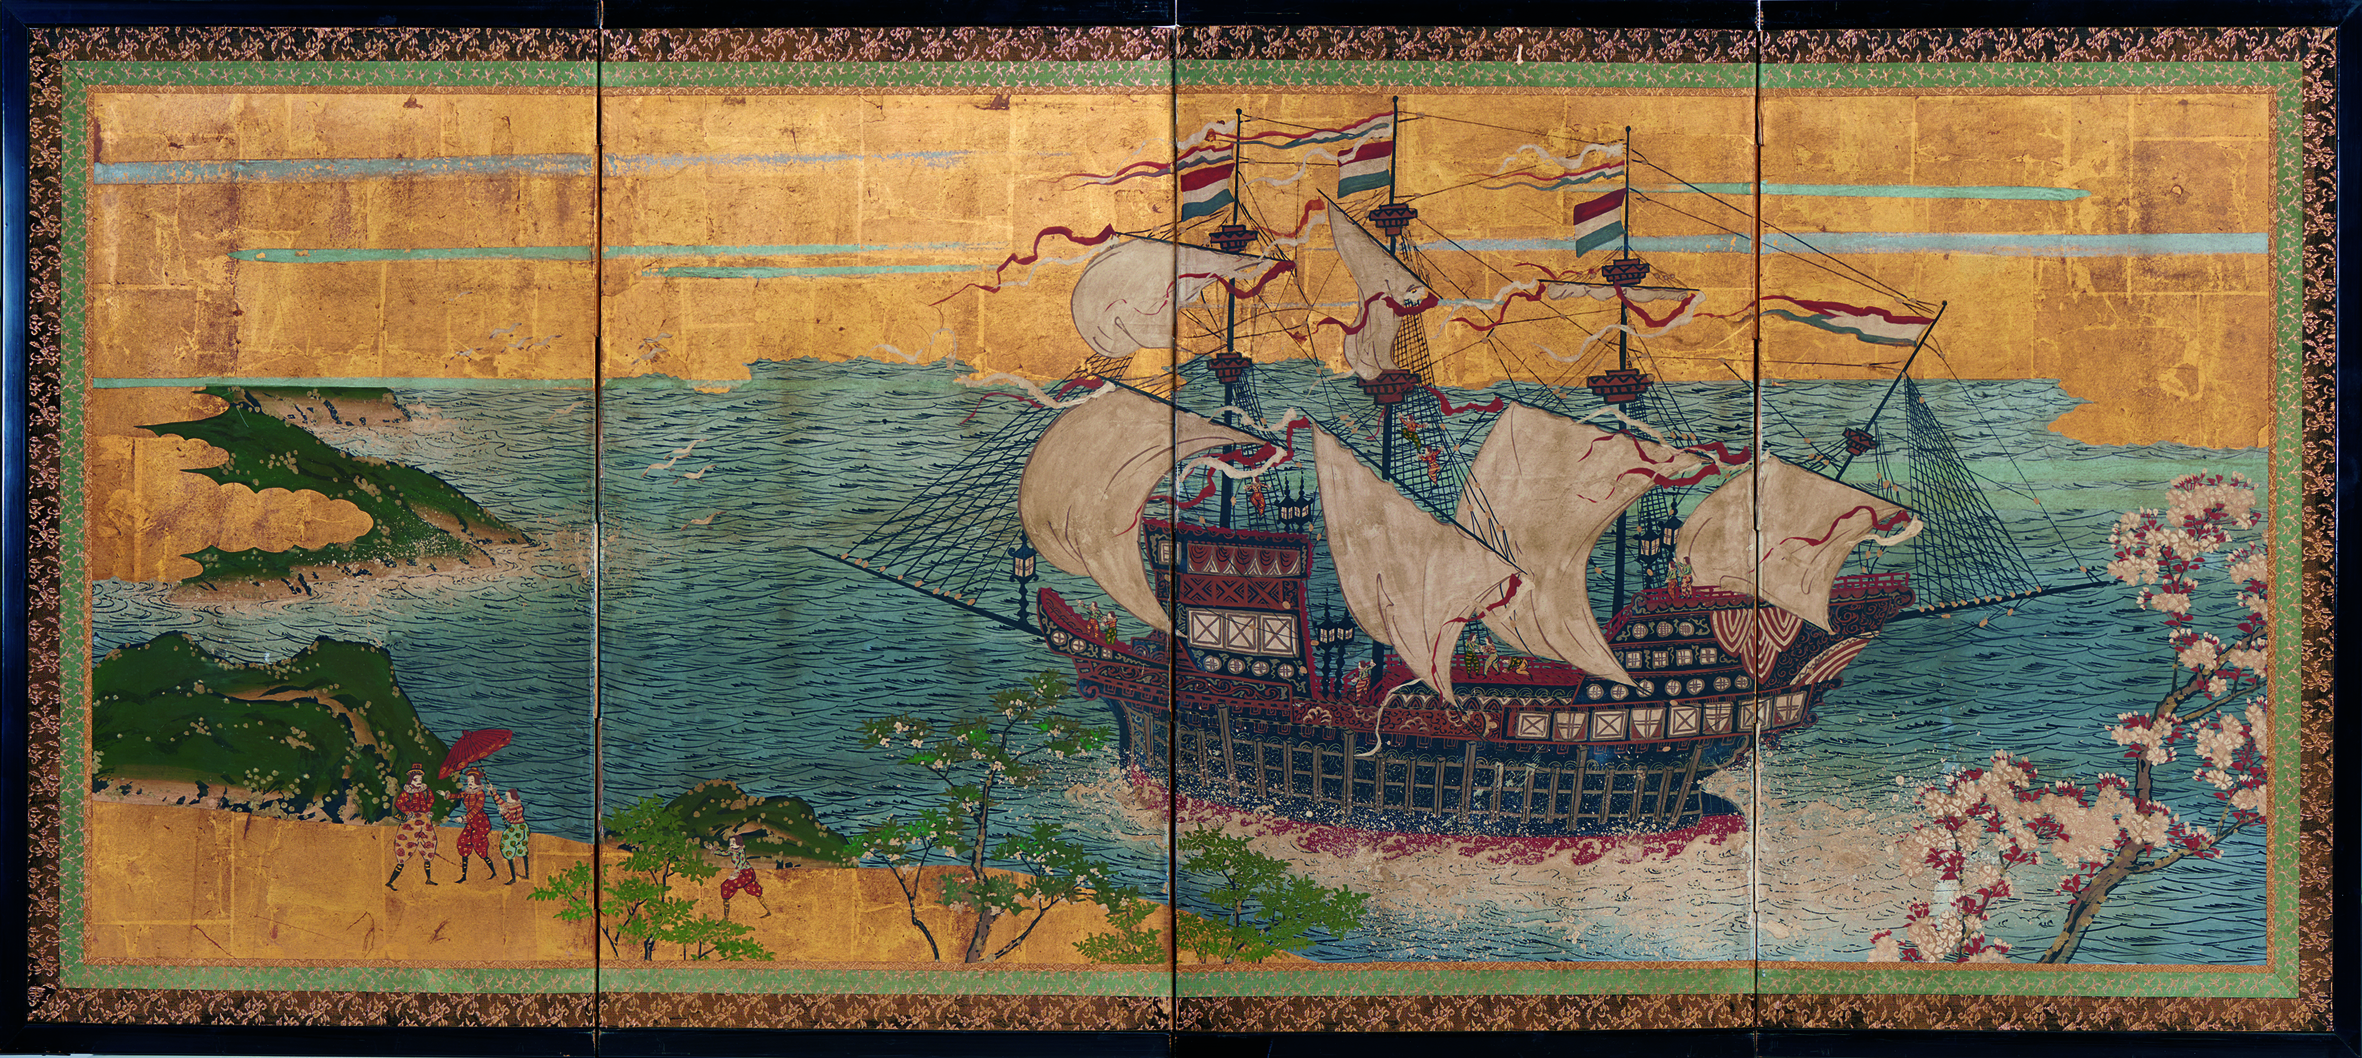 Japan   Dutch trading ship in Japanese waters  c.1870  four-panel screen, opaque watercolour, ink and gold on paper  67.5 x 138.0 x 11.0 cm  Kerry Stokes Collection, Perth